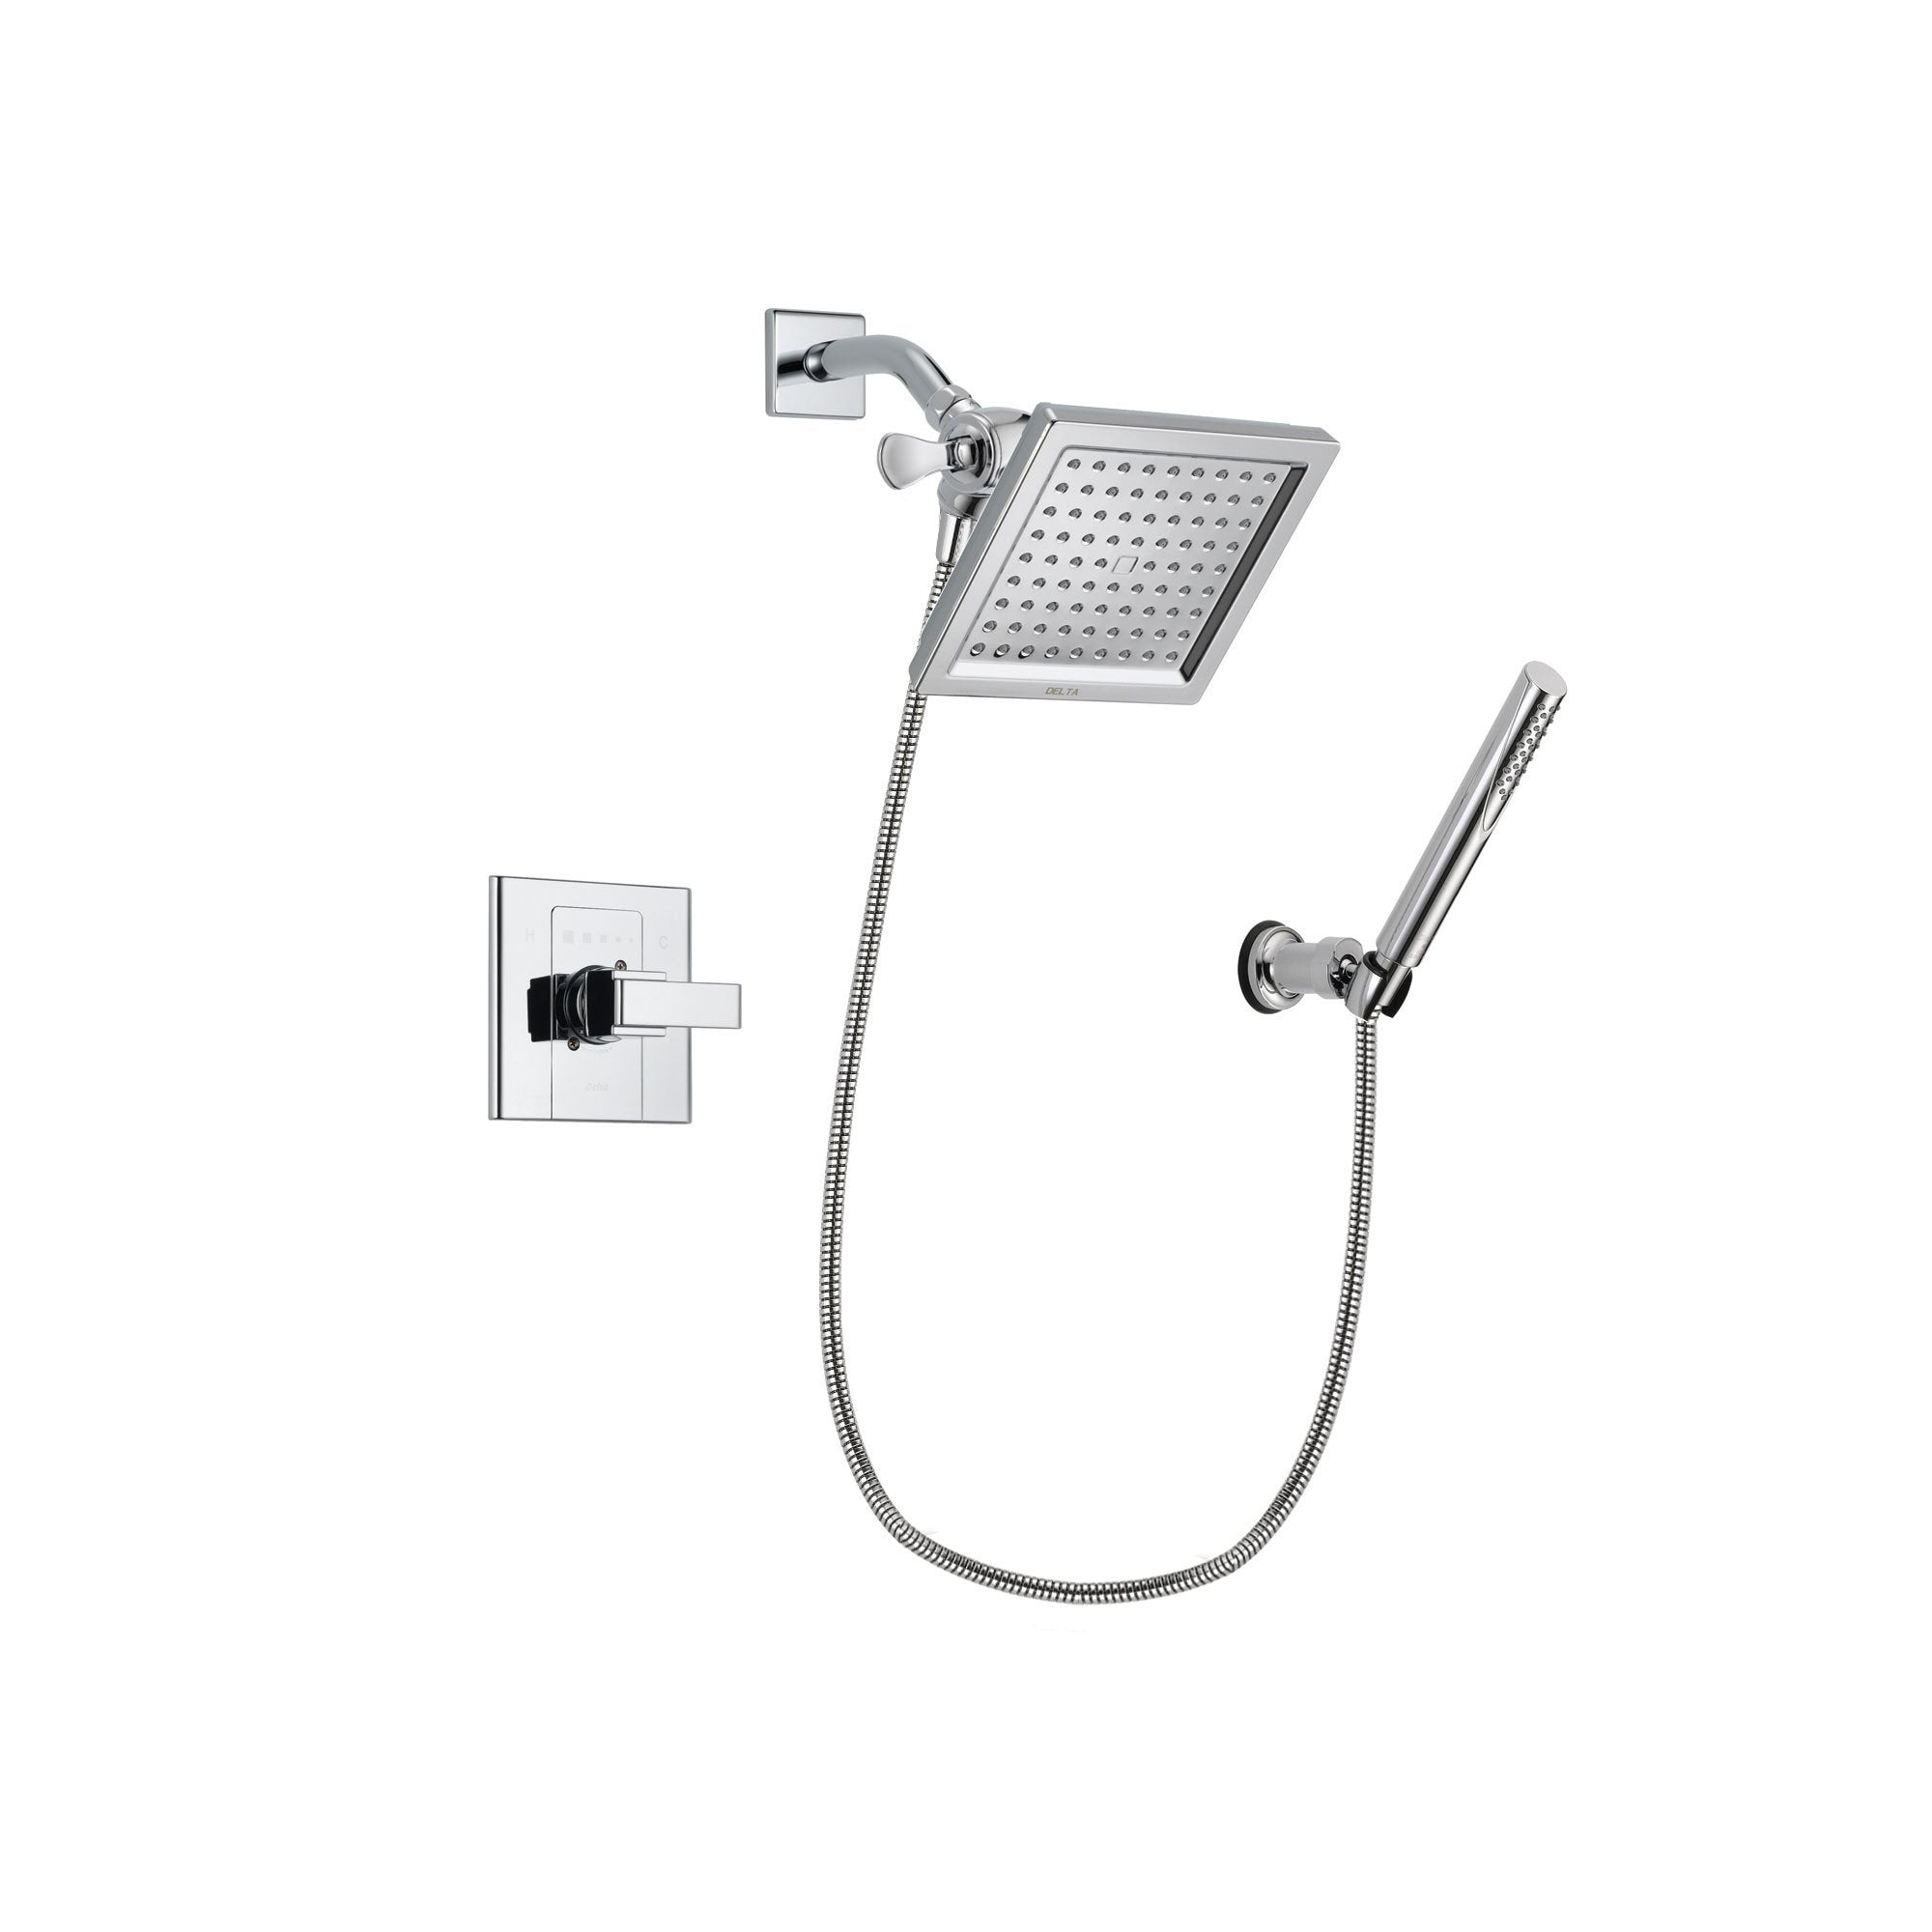 Delta Arzo Chrome Finish Shower Faucet System Package with 6.5-inch Square Rain Showerhead and Modern Handheld Shower Spray with Wall Bracket and Hose Includes Rough-in Valve DSP0076V